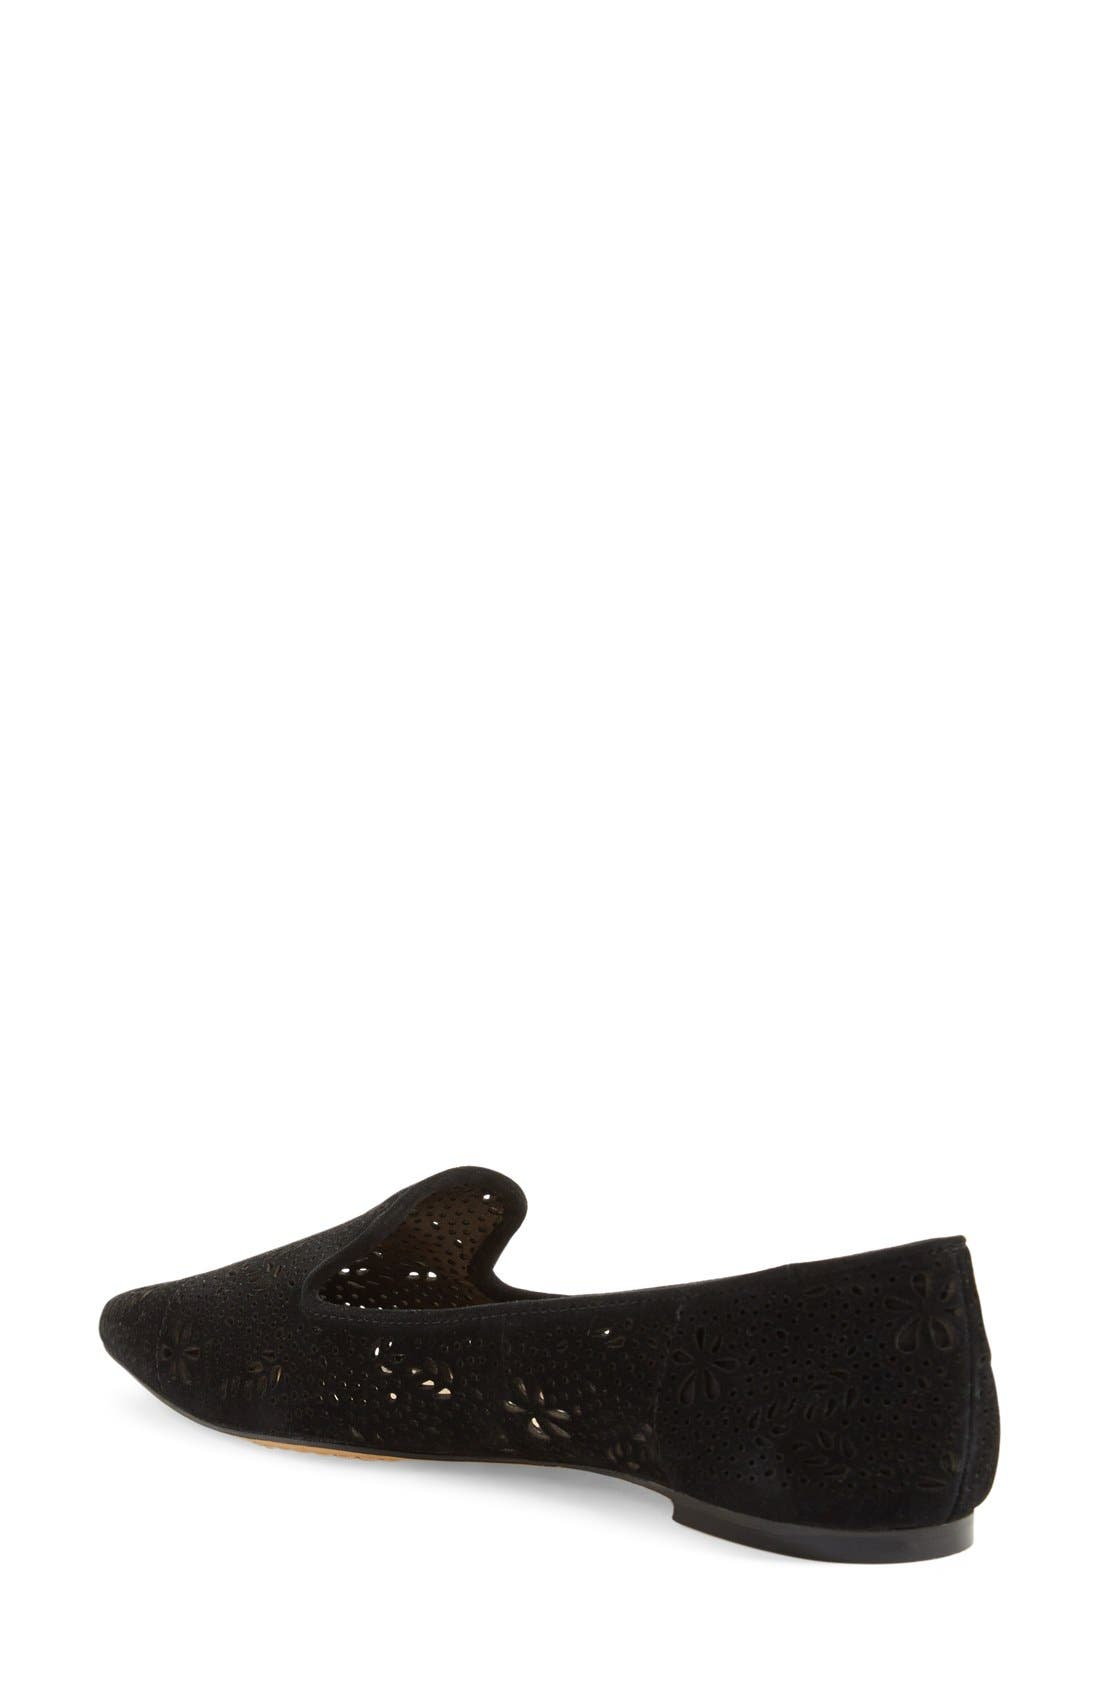 Alternate Image 2  - Vince Camuto 'Earina' Perforated Flat (Women) (Nordstrom Exclusive)